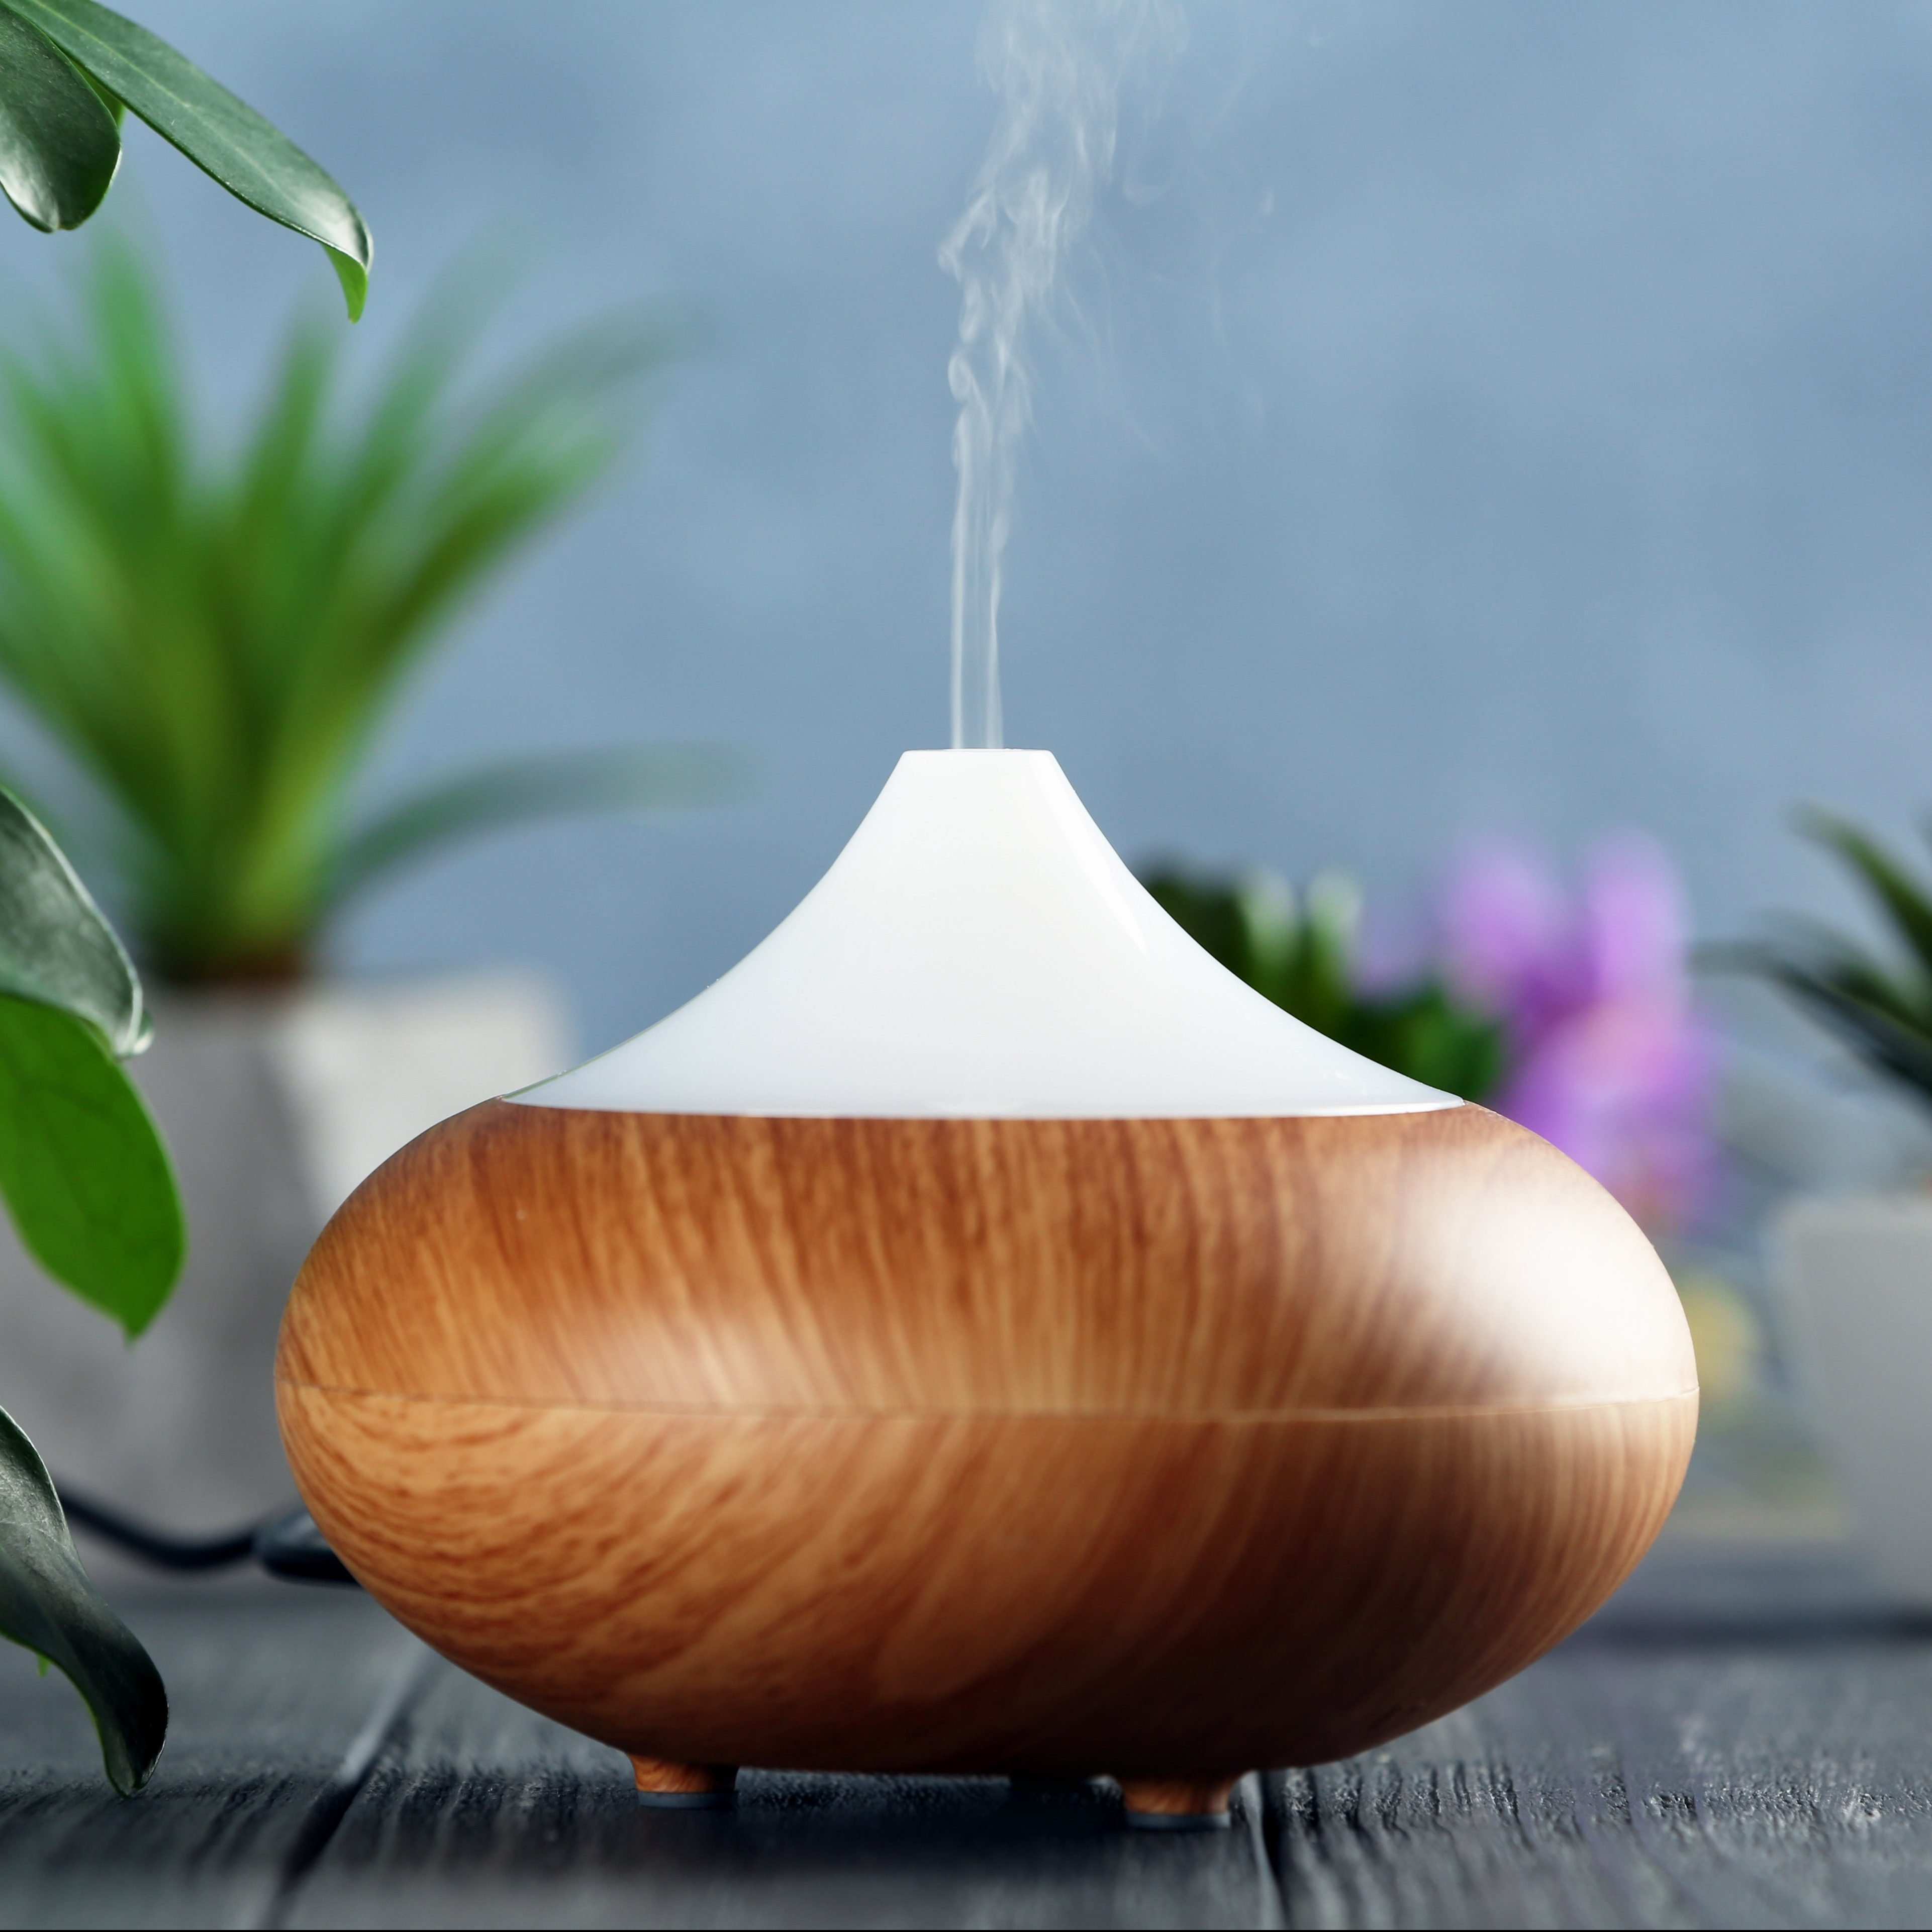 Do You Smell That? The Health Benefits Of Aromatherapy